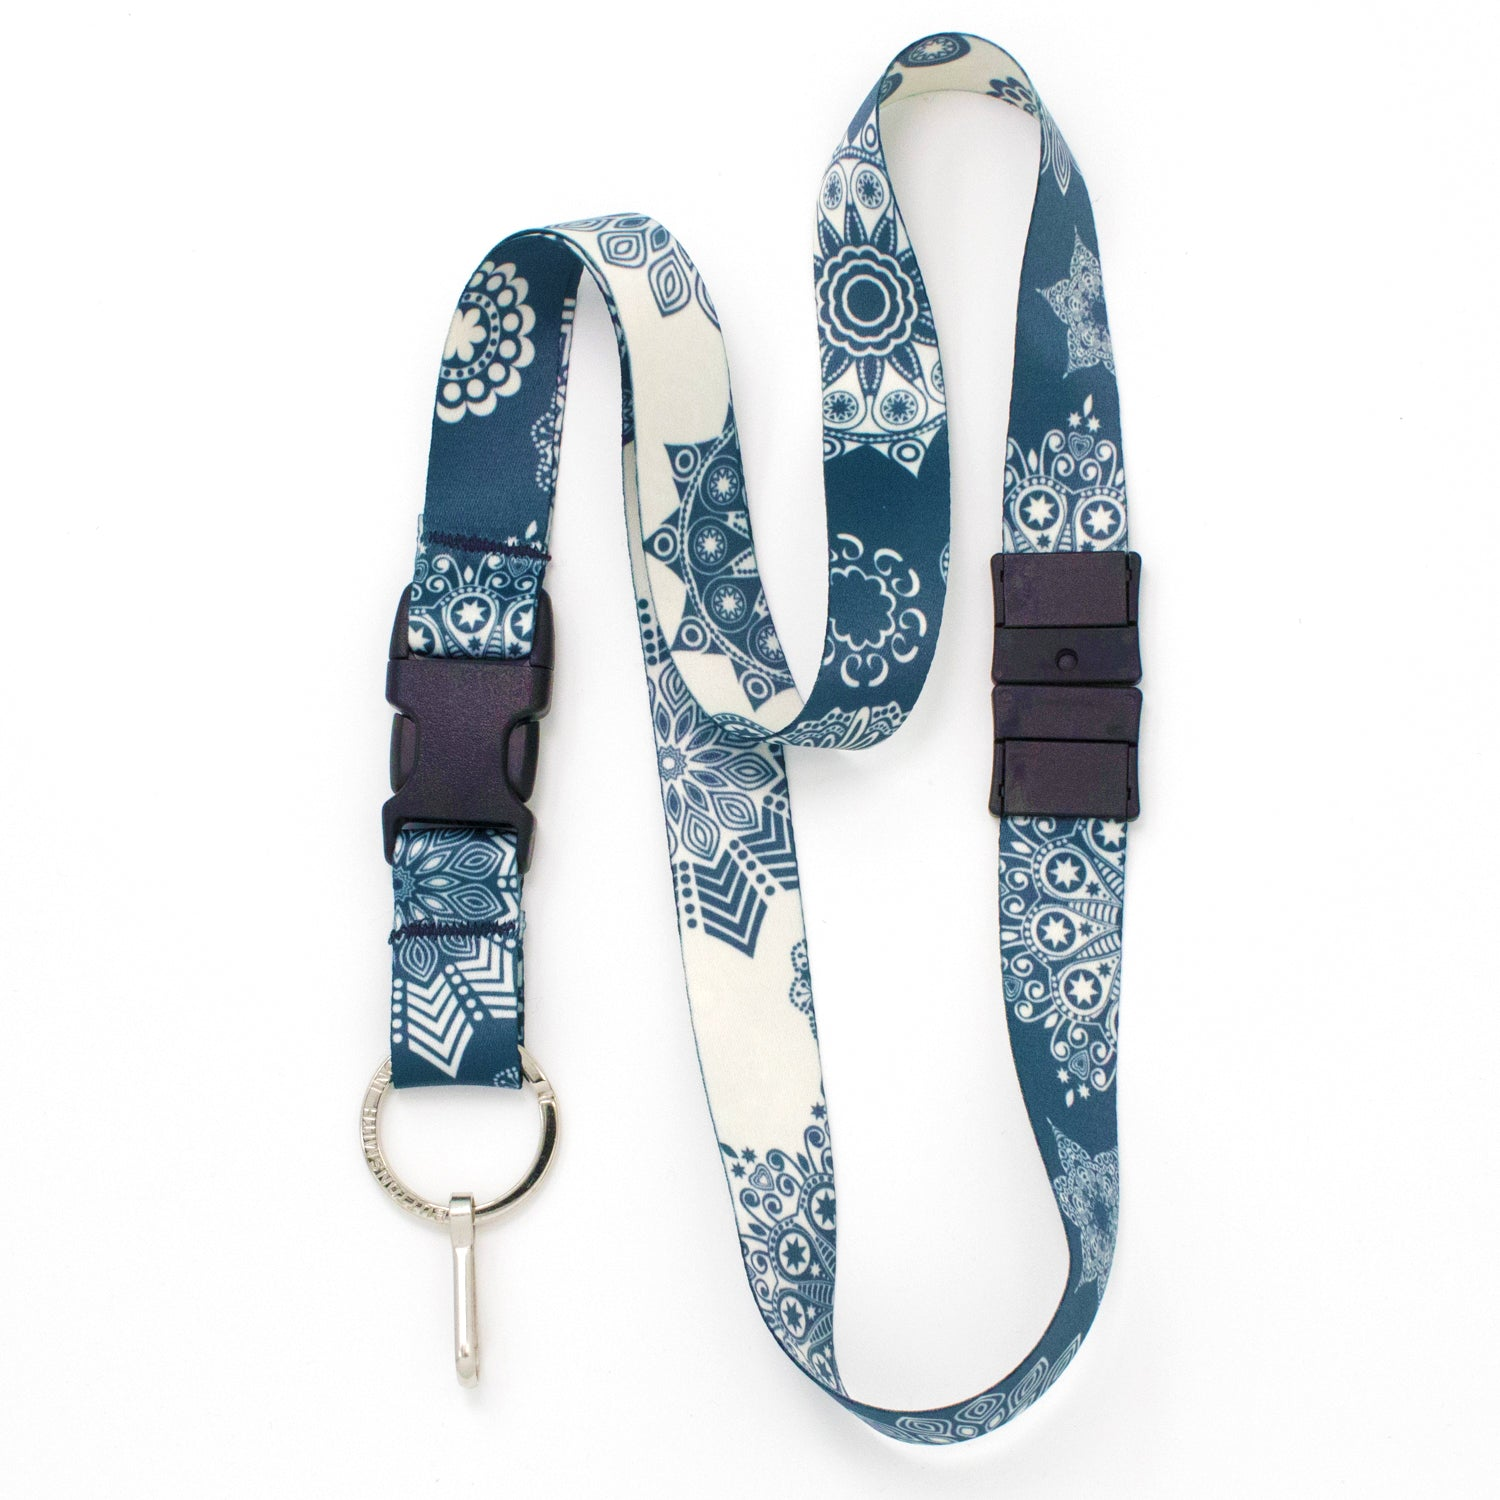 Buttonsmith Denim Lace Breakaway Lanyard - Made in USA